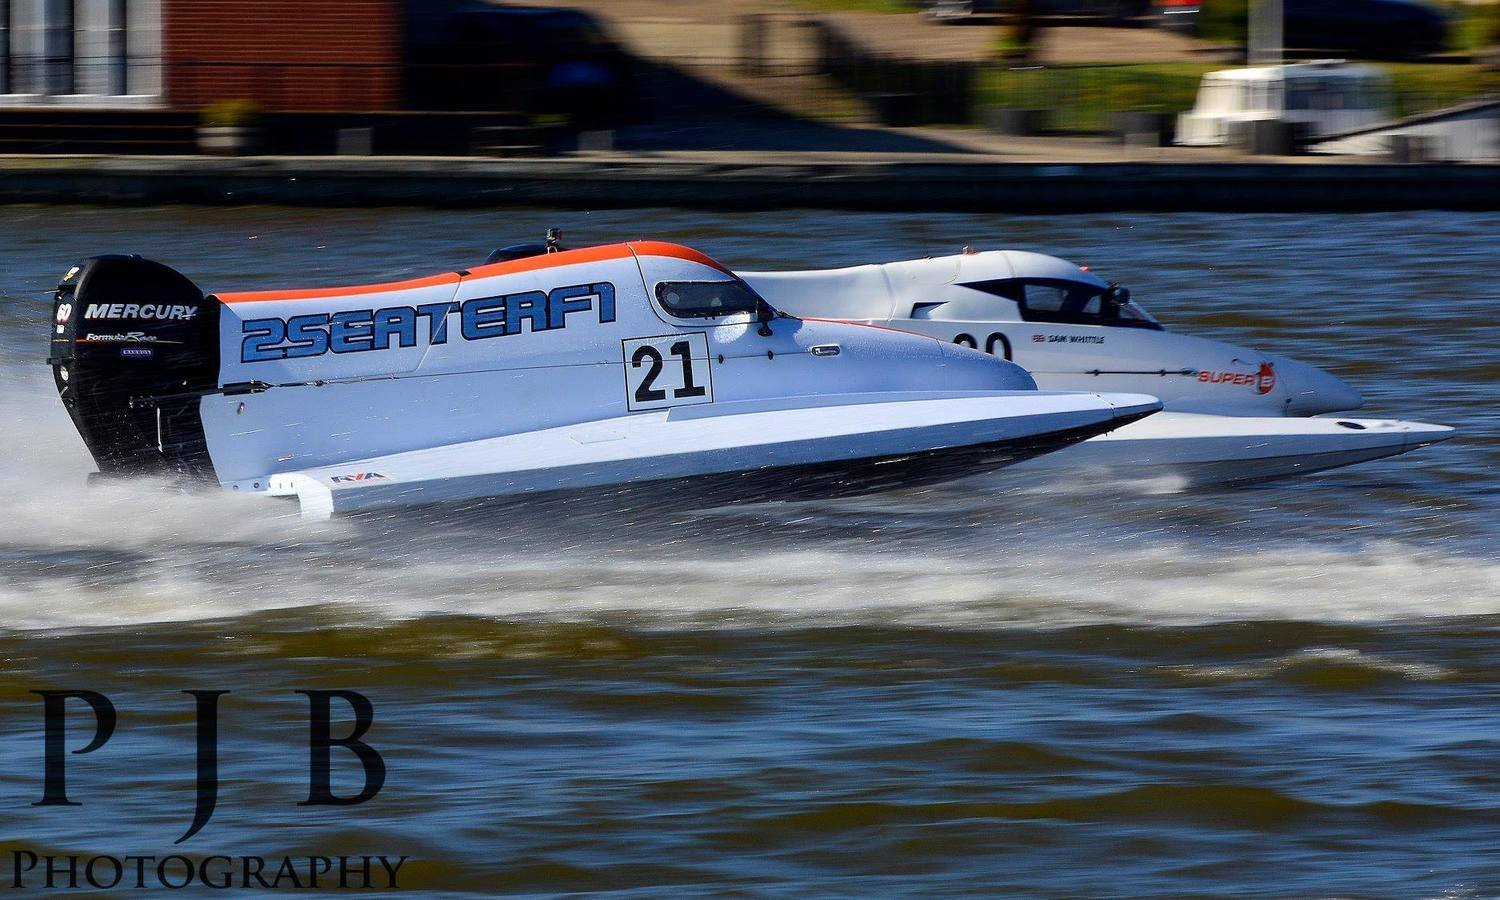 F4 Powerboat Driving Experience, Wyboston Lakes 10th August 2018